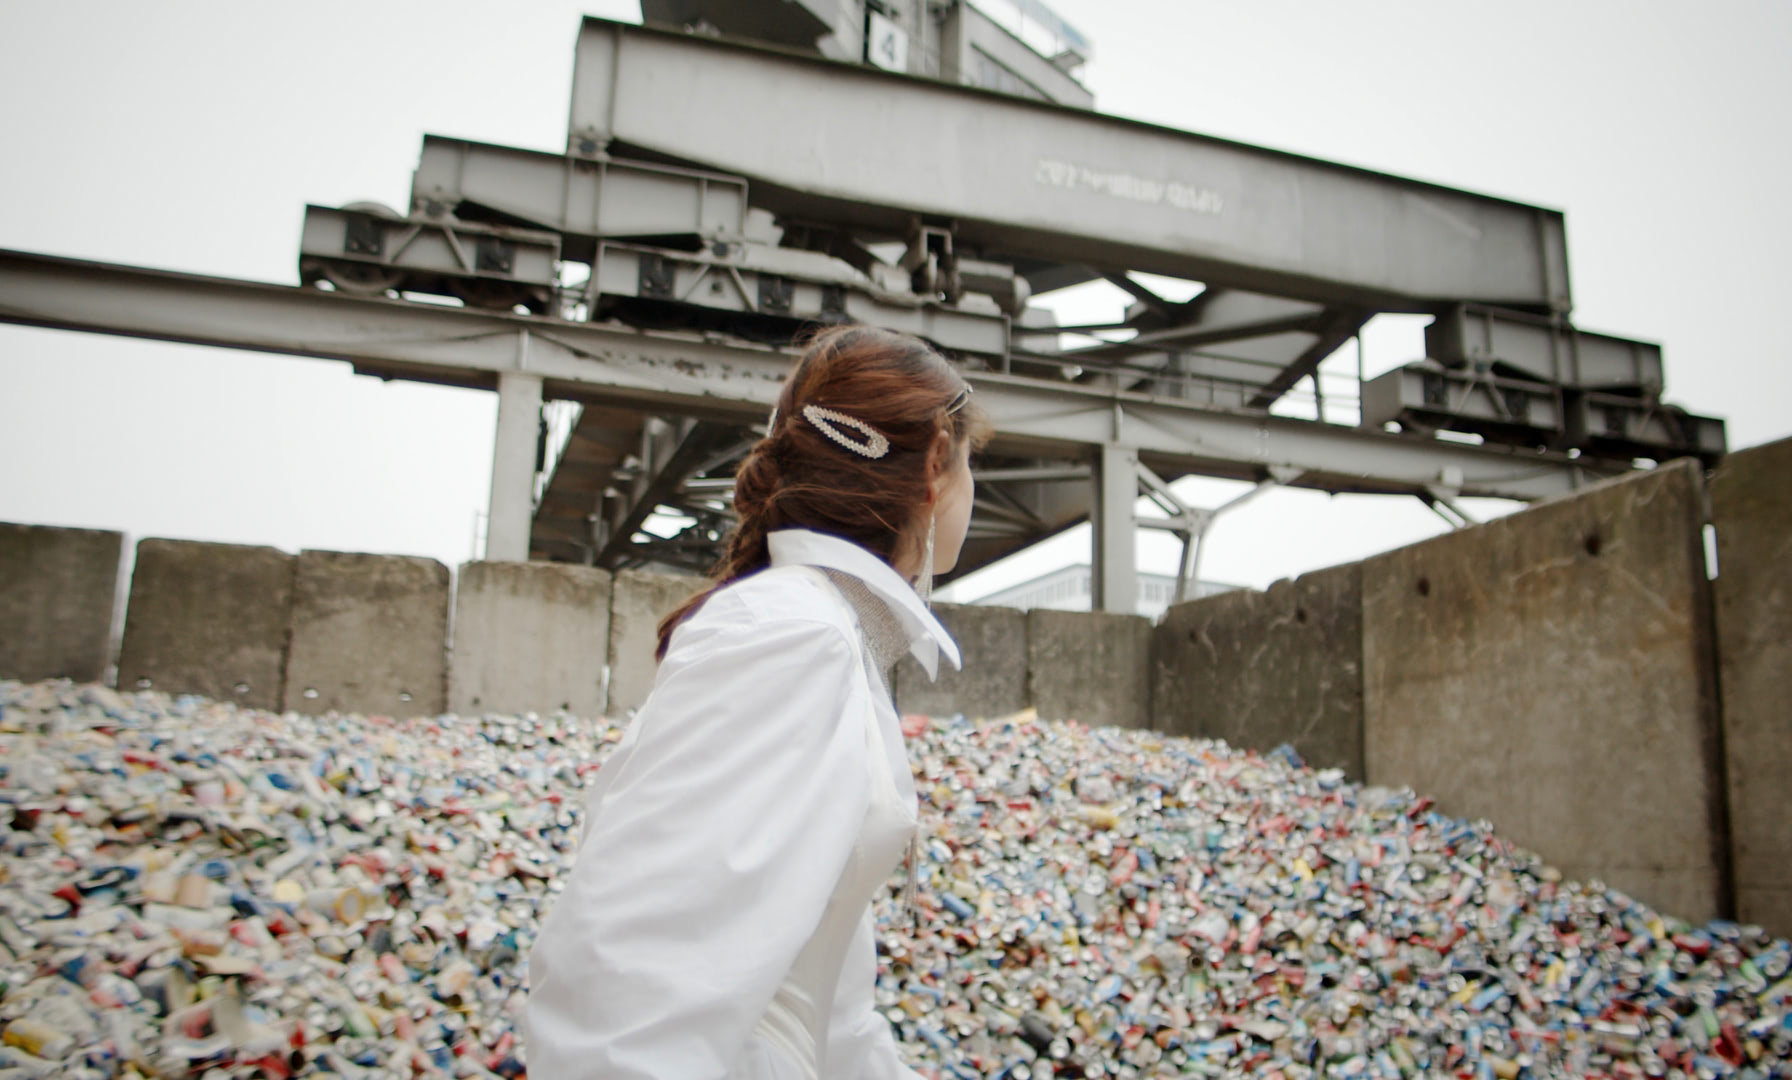 A young woman is standing in a recycling yard in front of a mountain of old discarded beer cans.